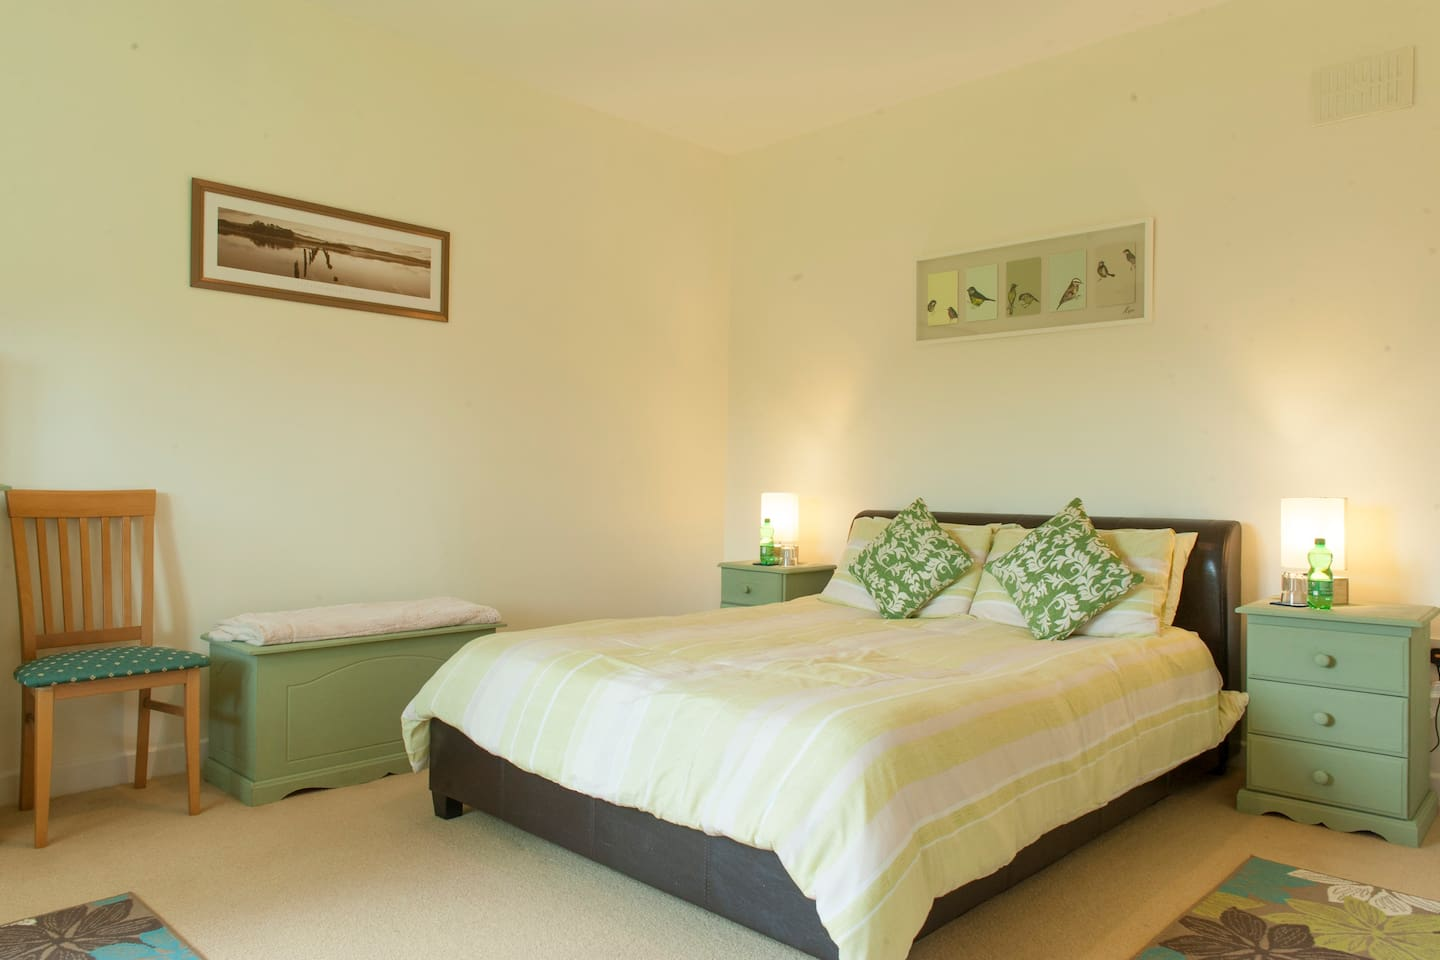 A large airy bedroom with a comfy king size bed